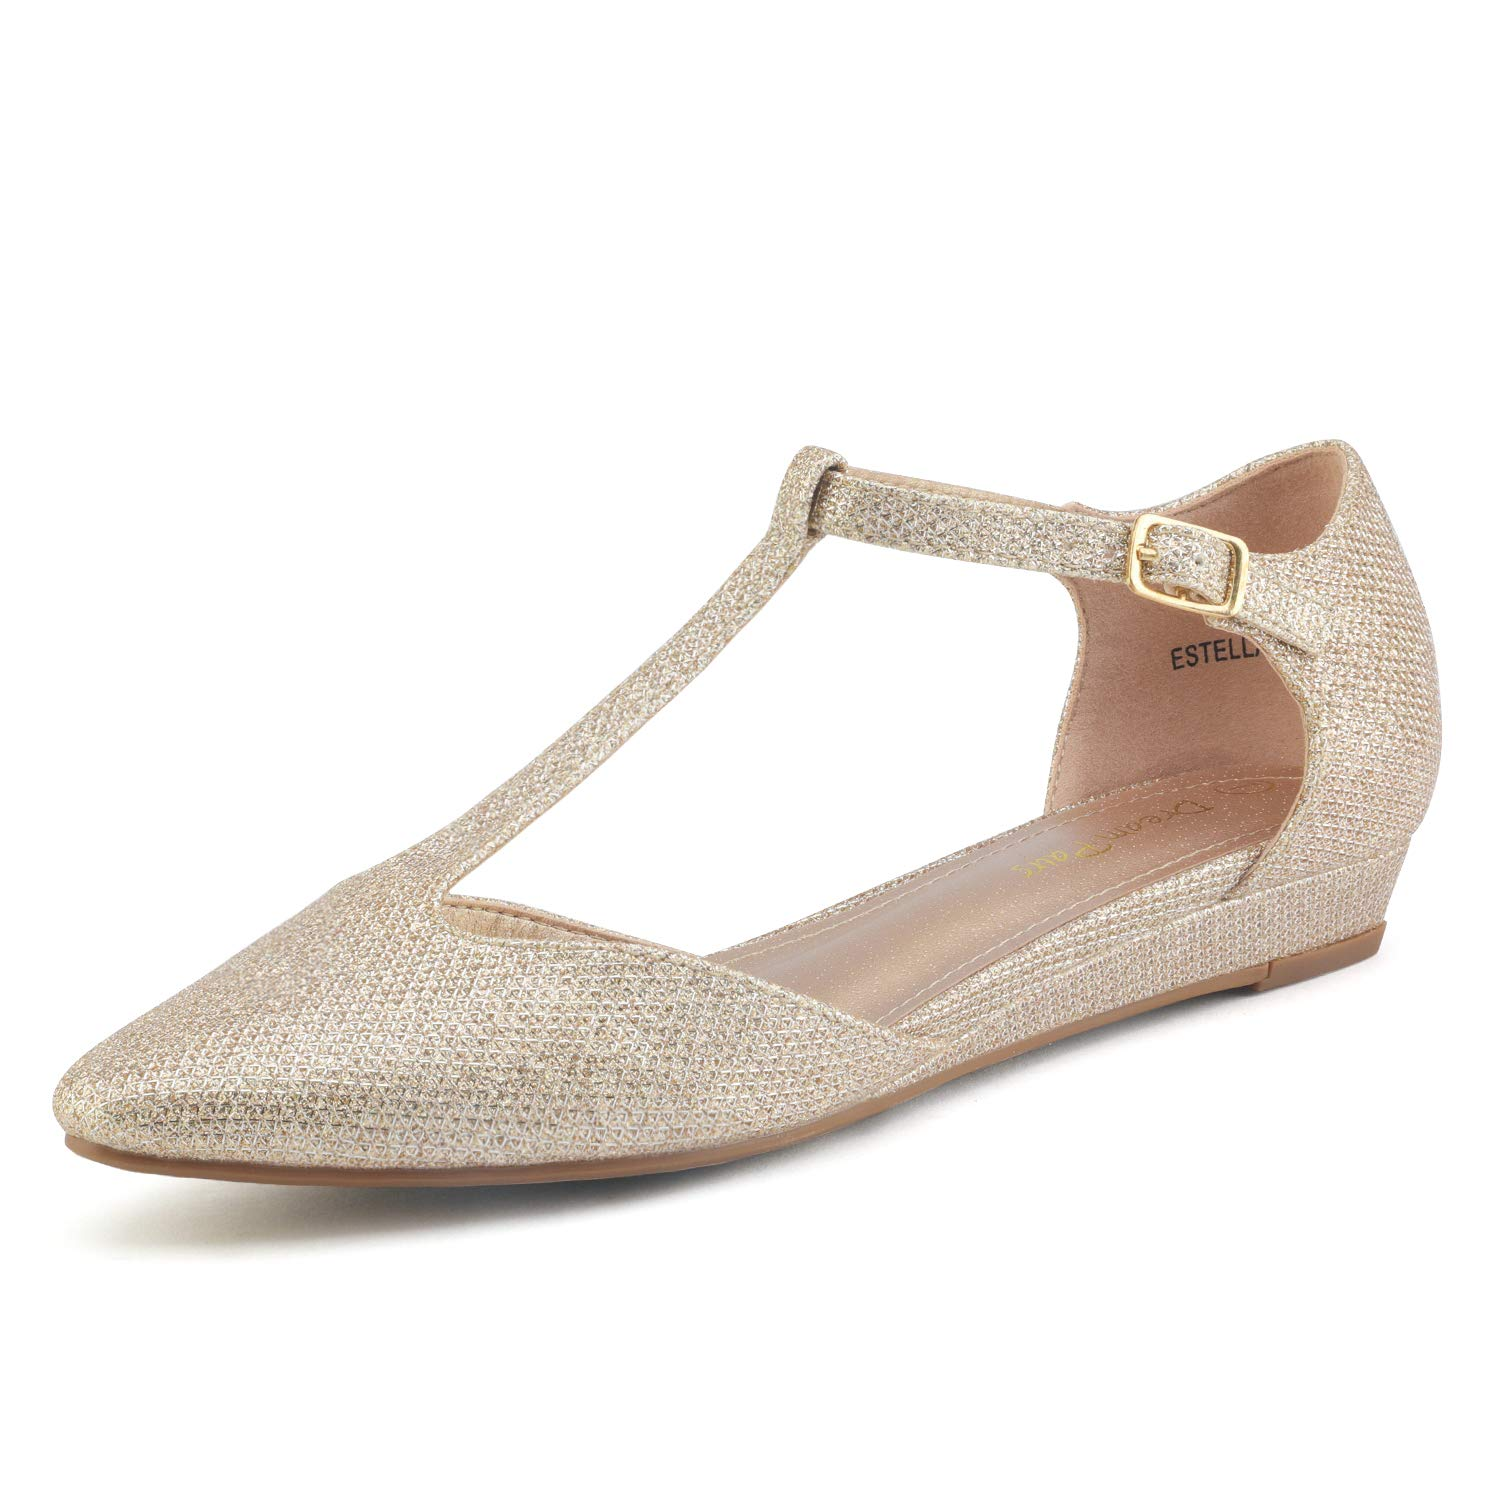 DREAM PAIRS Women's Gold Glitter Low Wedge Ballet Flats Shoes Size 7.5 M US Estella by DREAM PAIRS